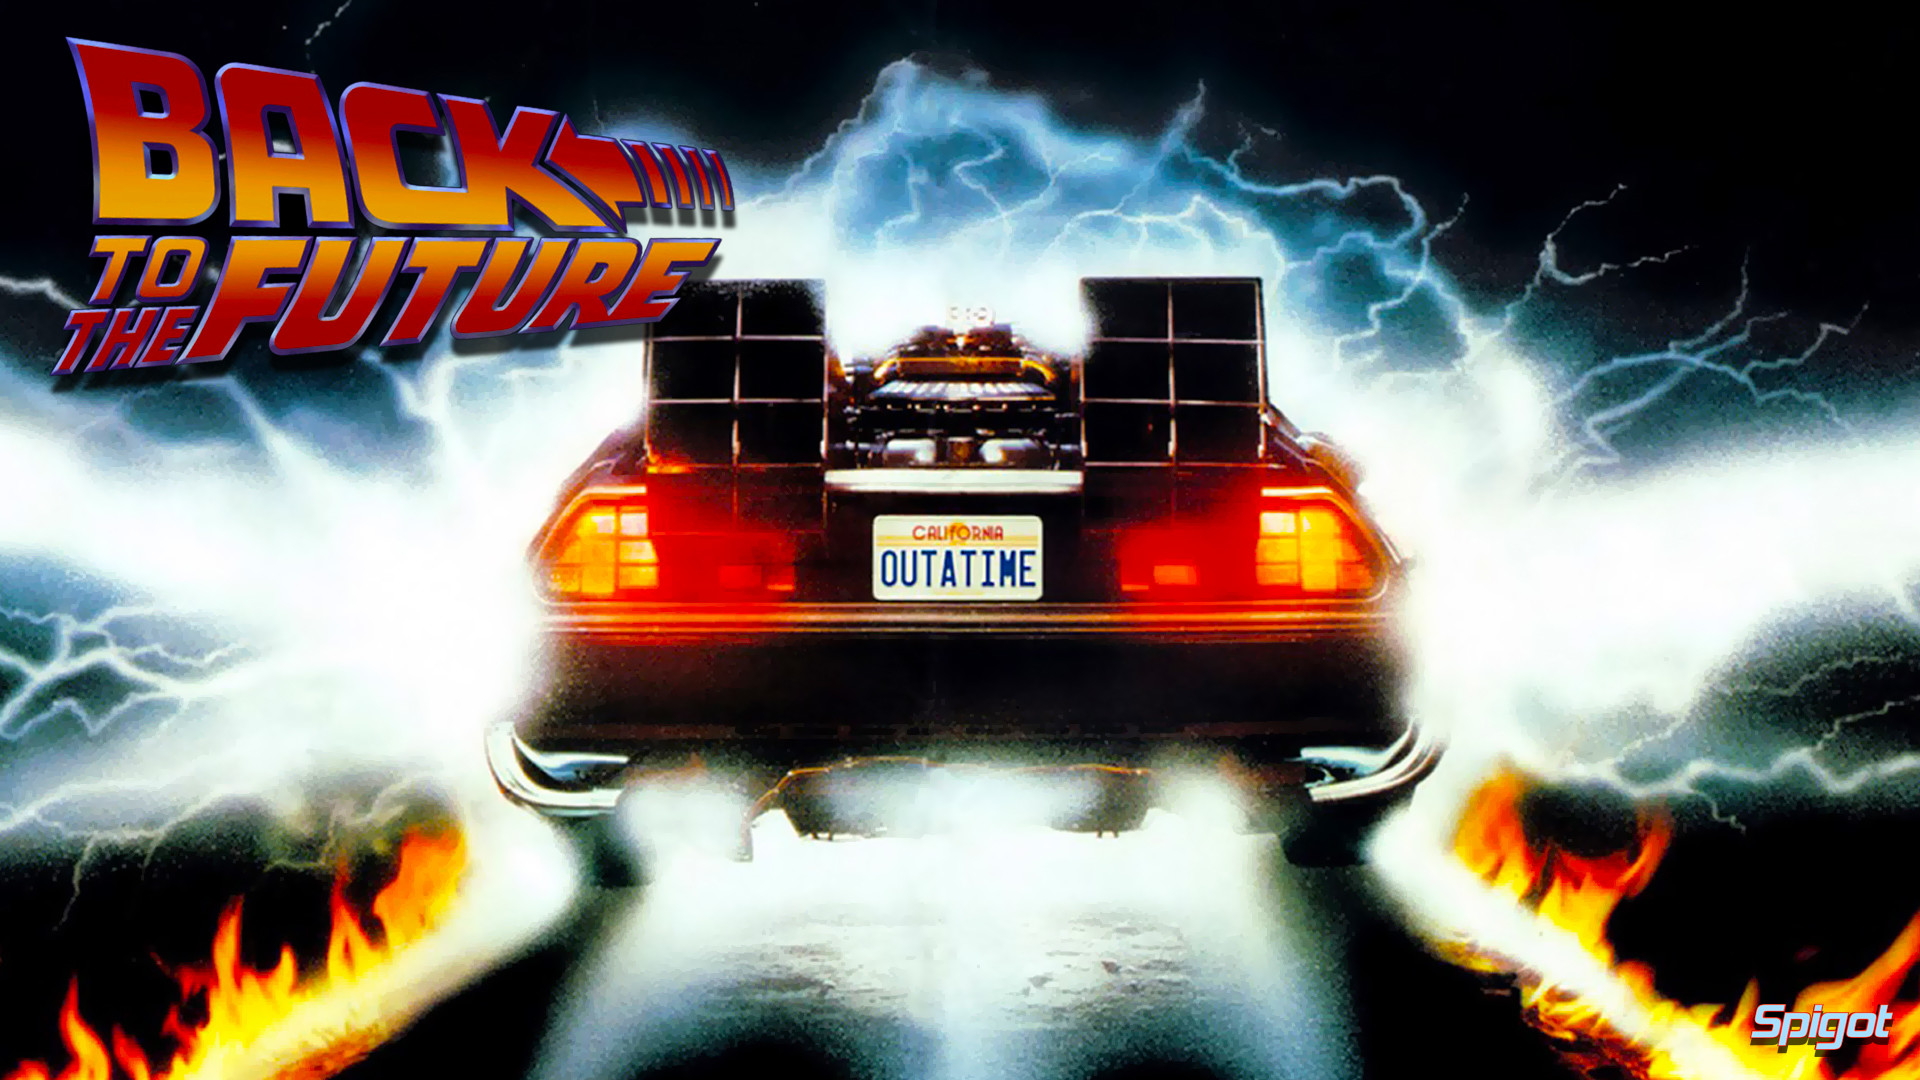 Res: 1920x1080, ... back-to-the-future-car-in-the-movie-wallpaper-3.jpg ...